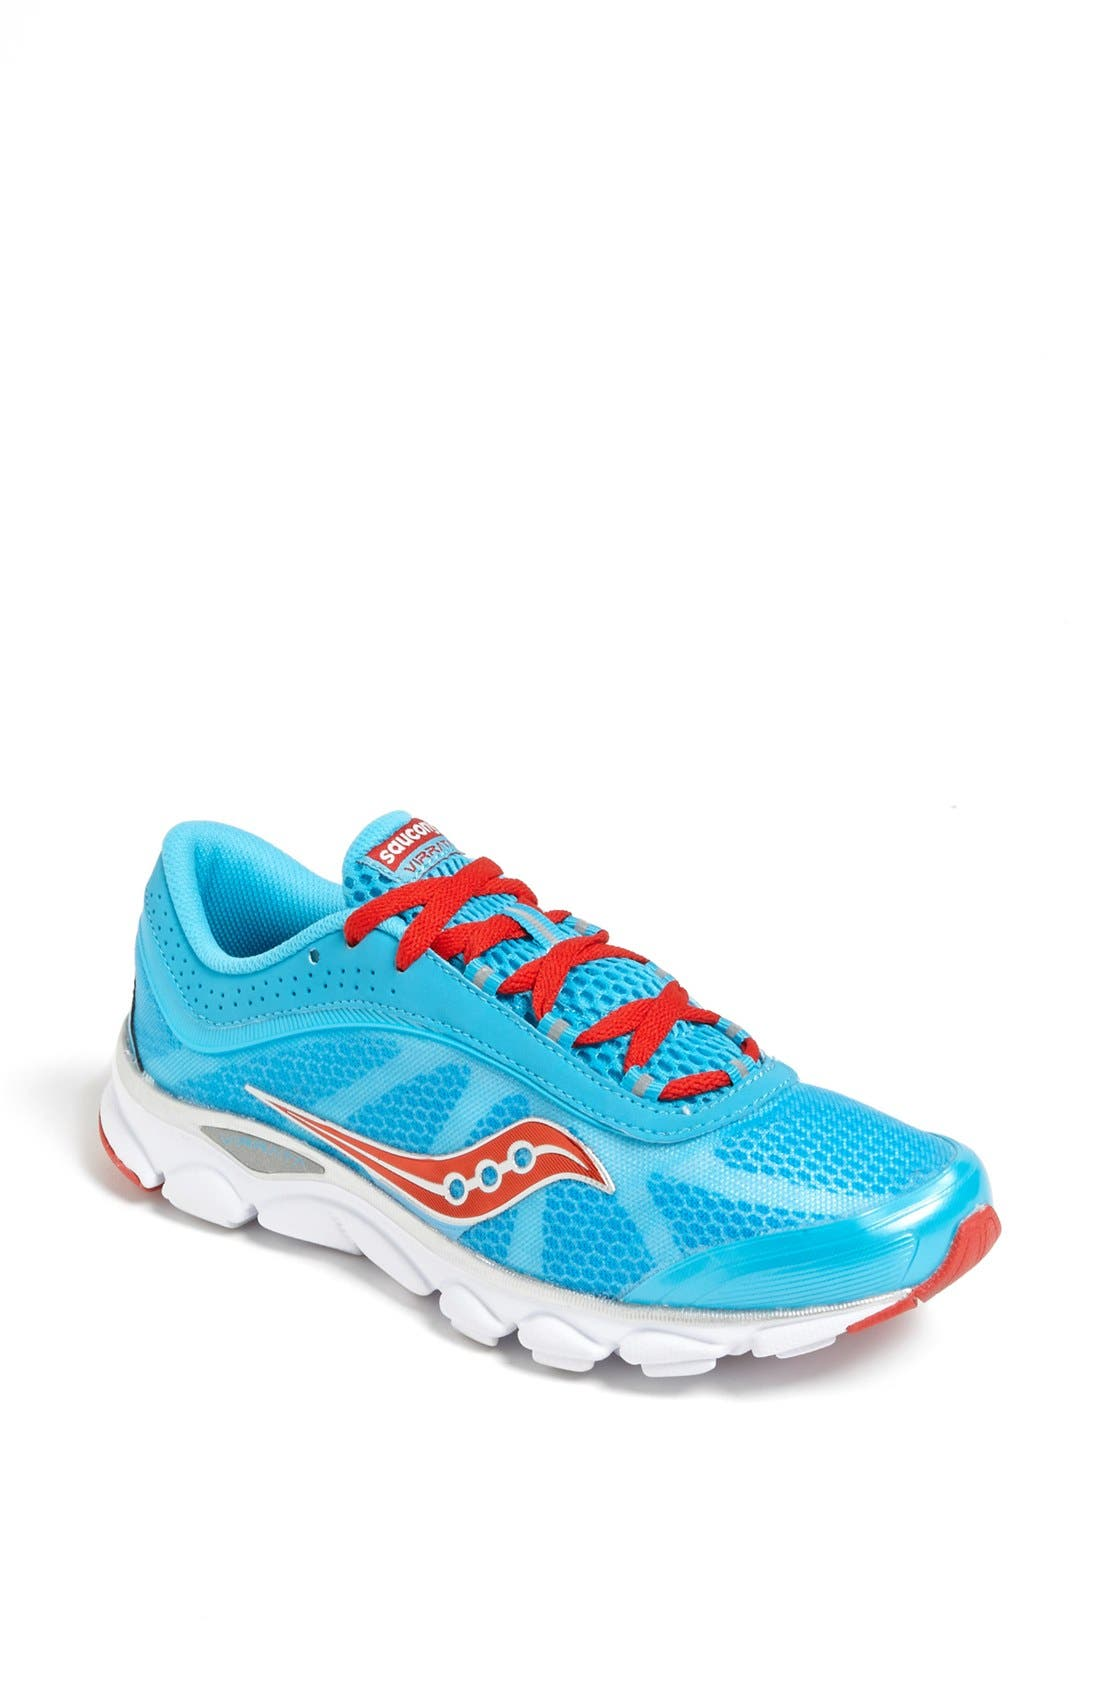 Alternate Image 1 Selected - Saucony 'Virrata' Running Shoe (Women)(Regular Retail Price: $89.95)